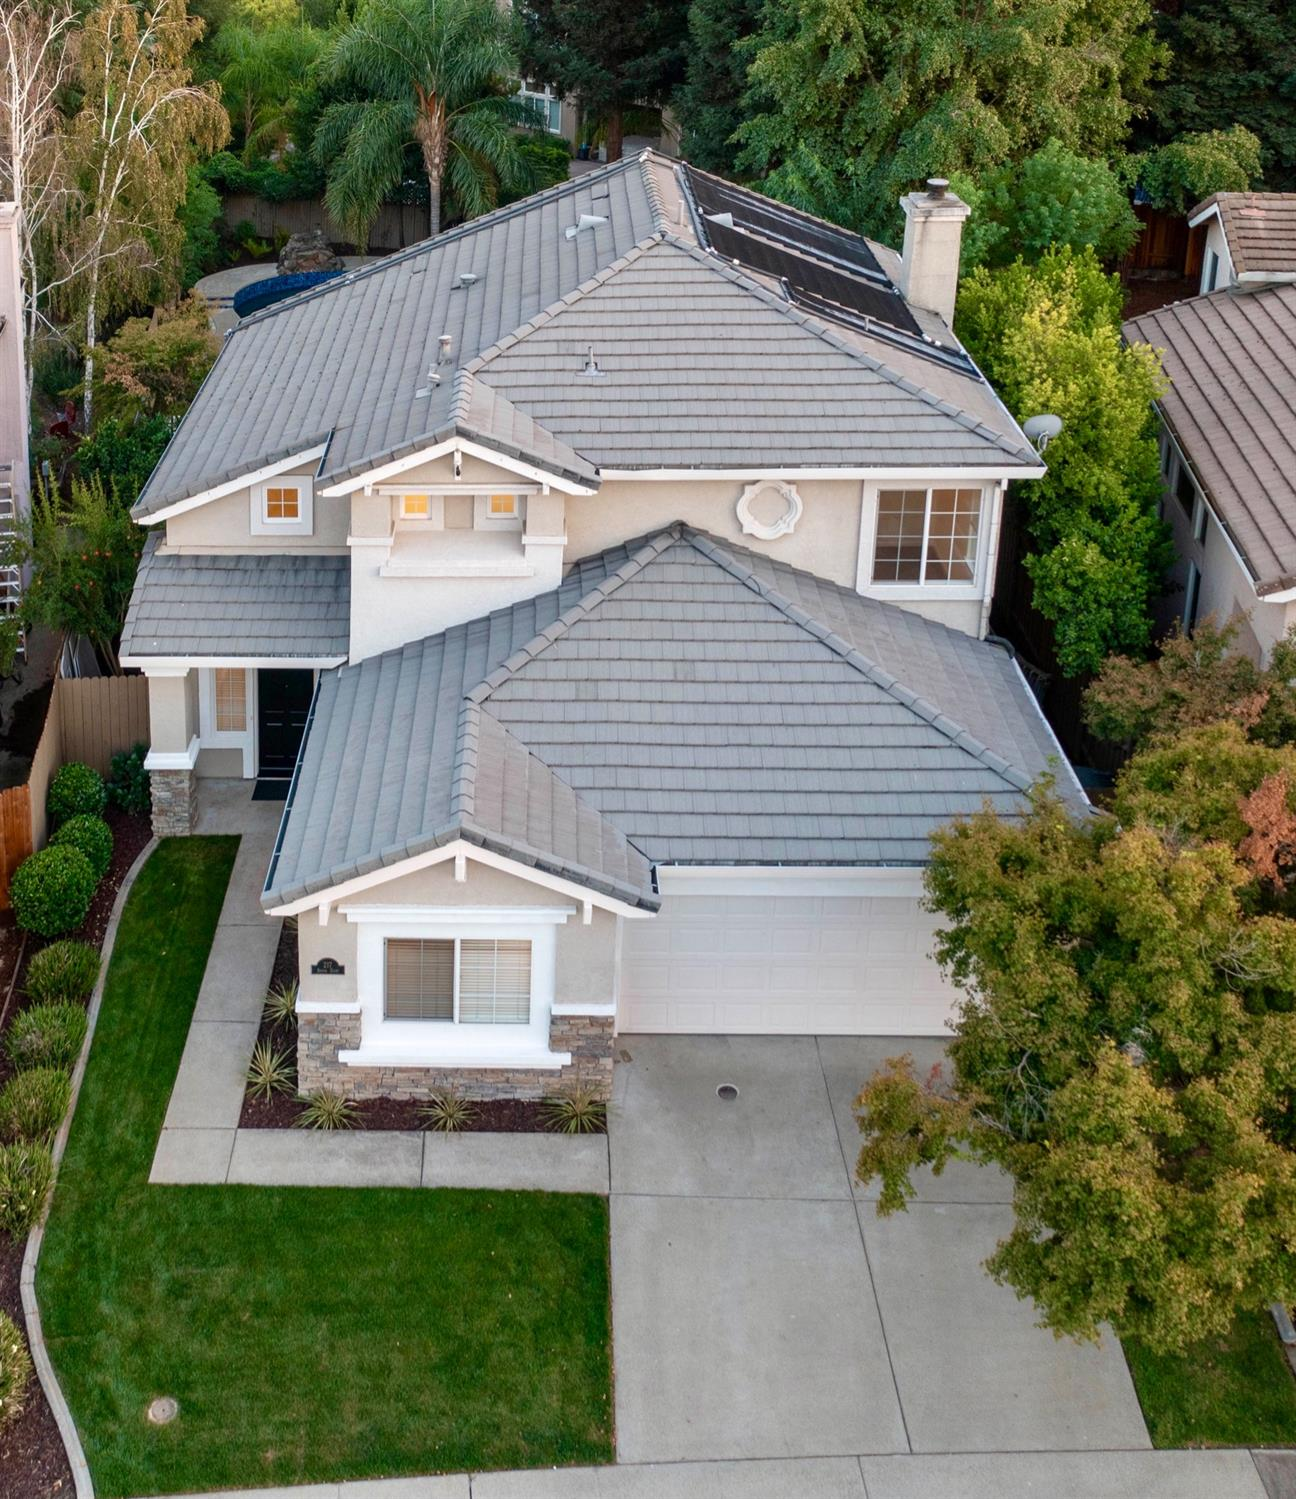 Photo 4 for Listing #221121872